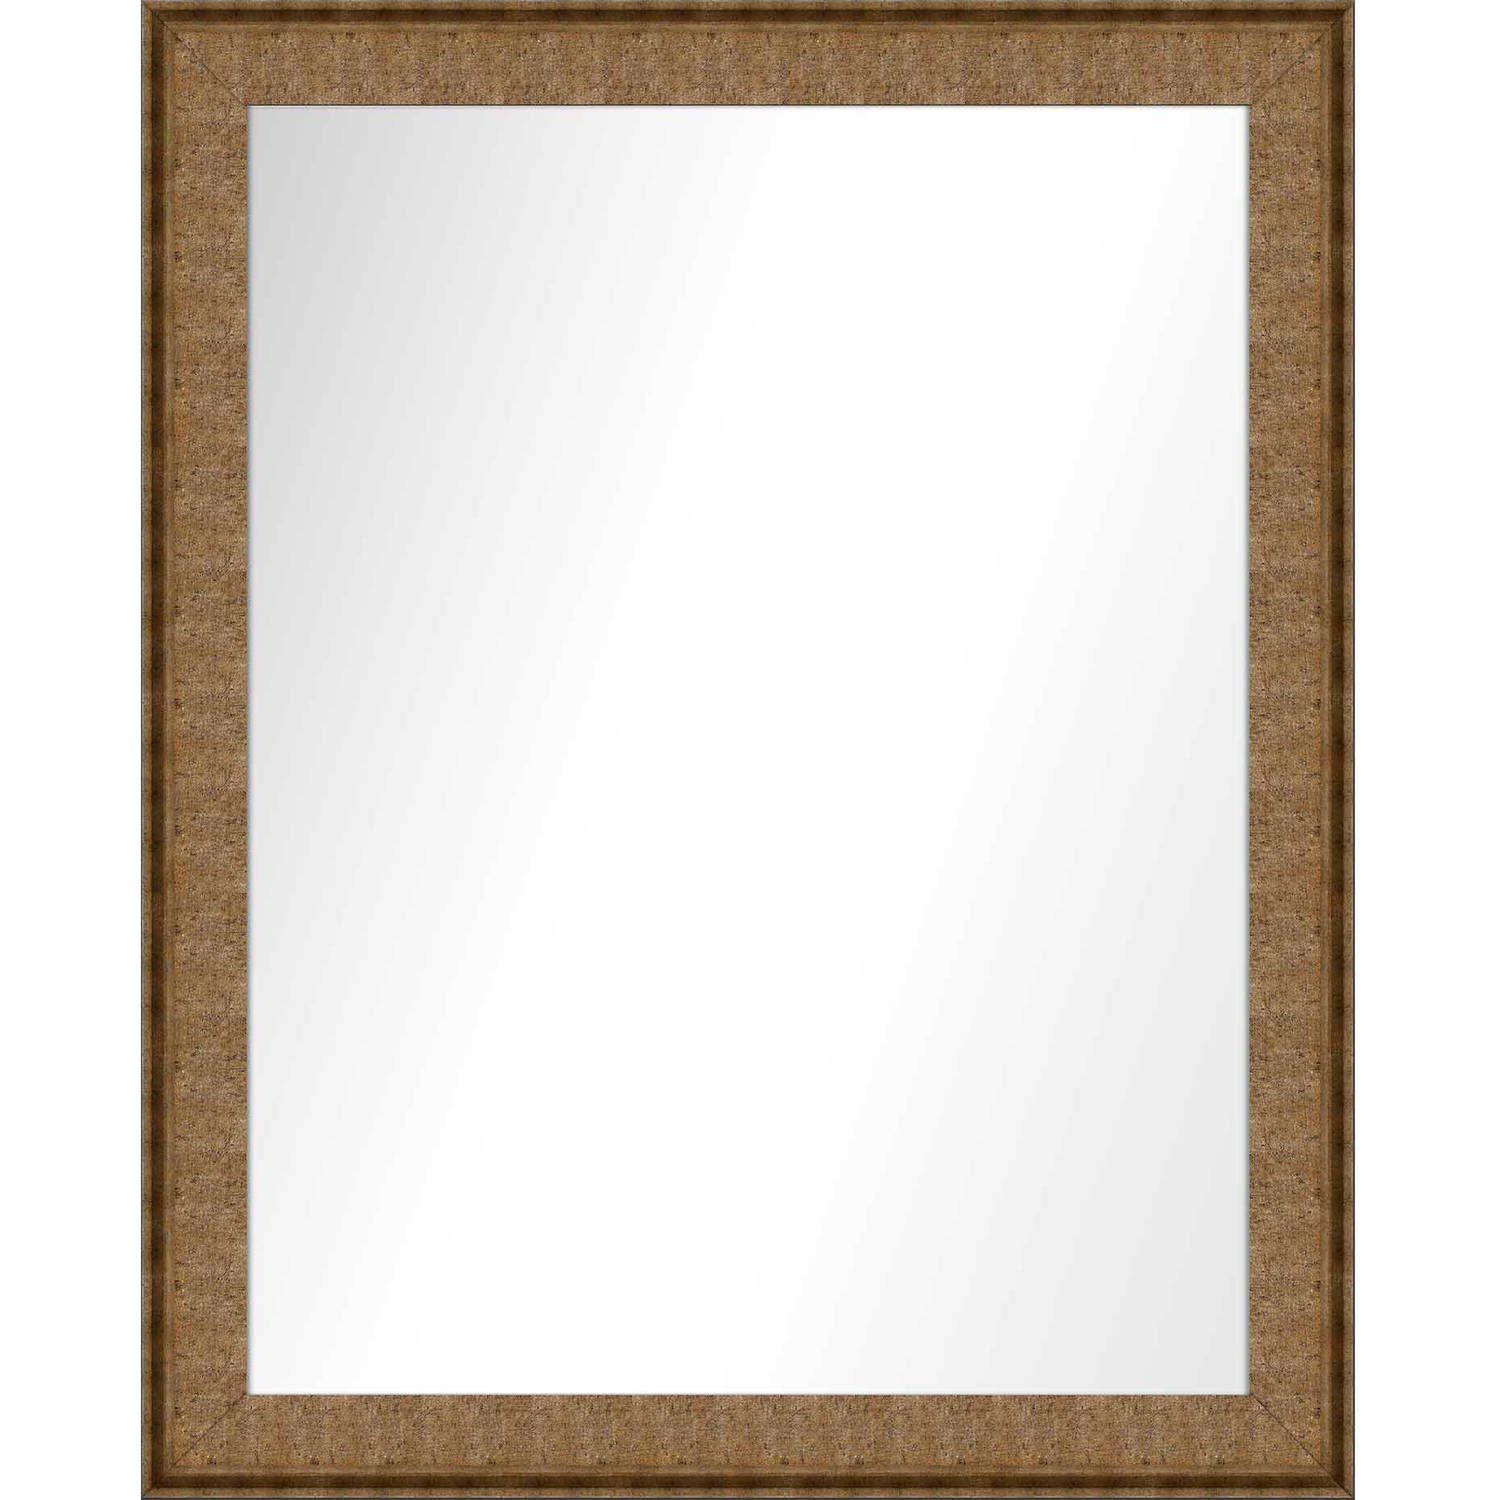 Vanity Mirror, Gold, 25.5x31.5 by PTM Images